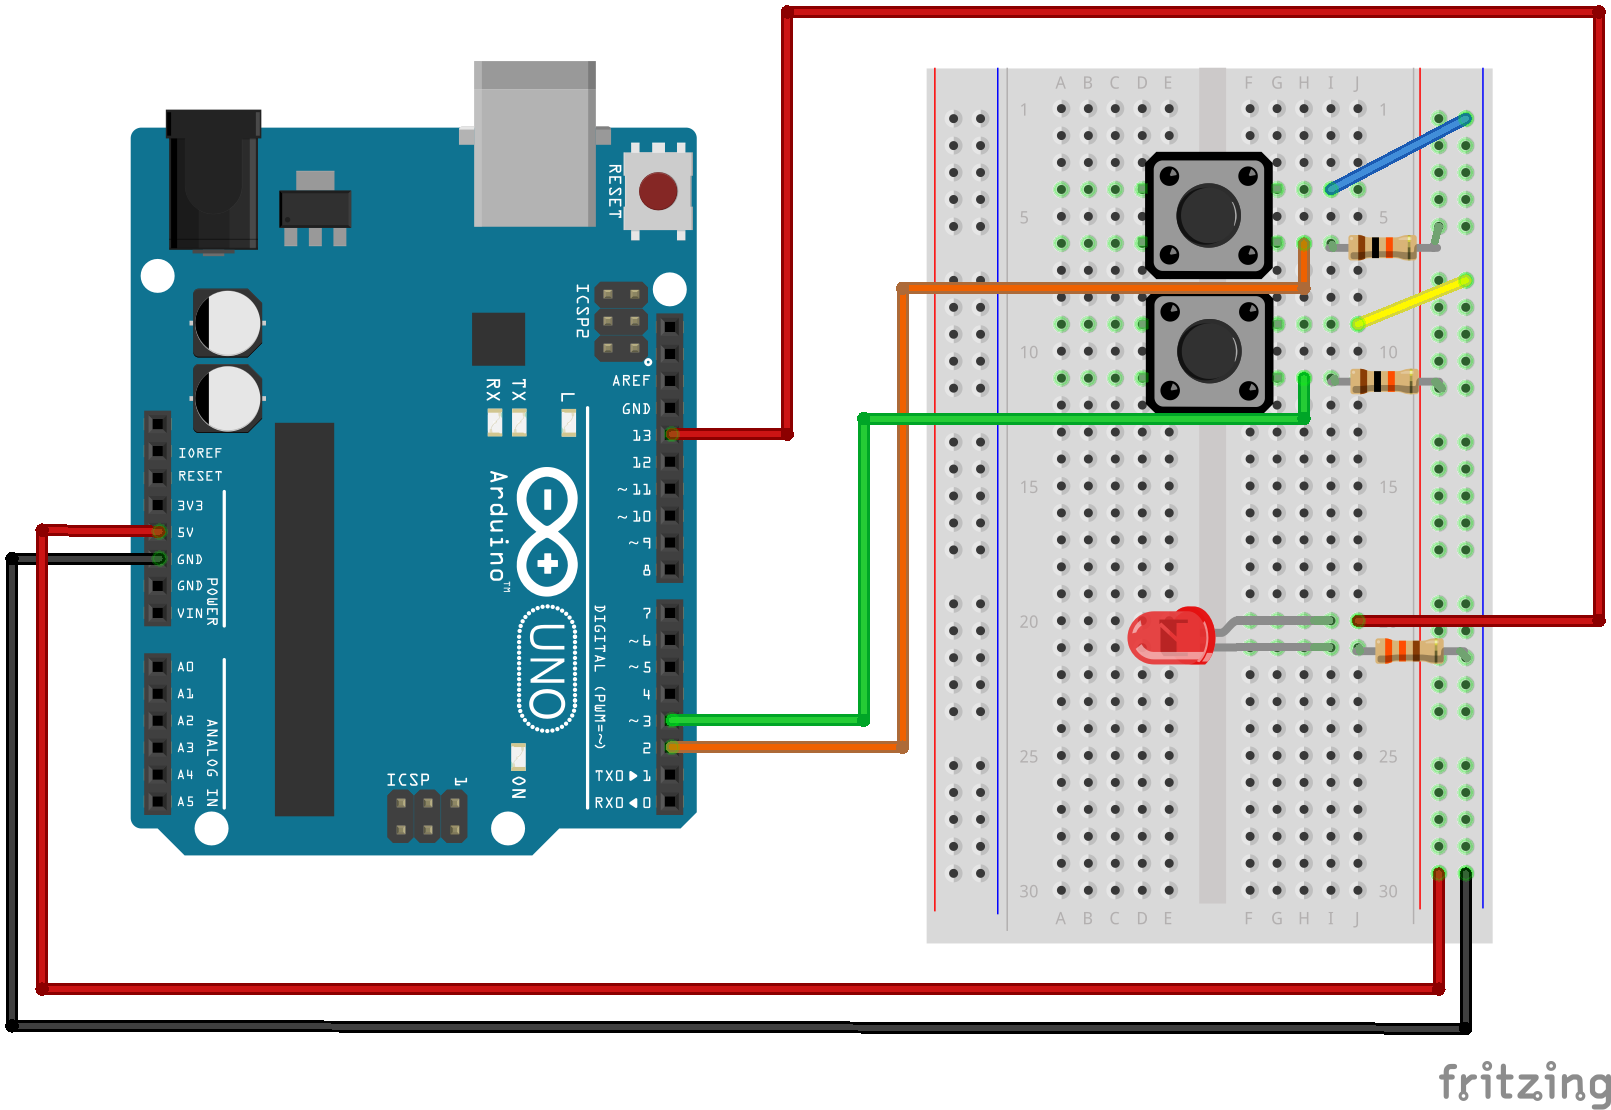 [RESOLVED] 2 buttons control for LED